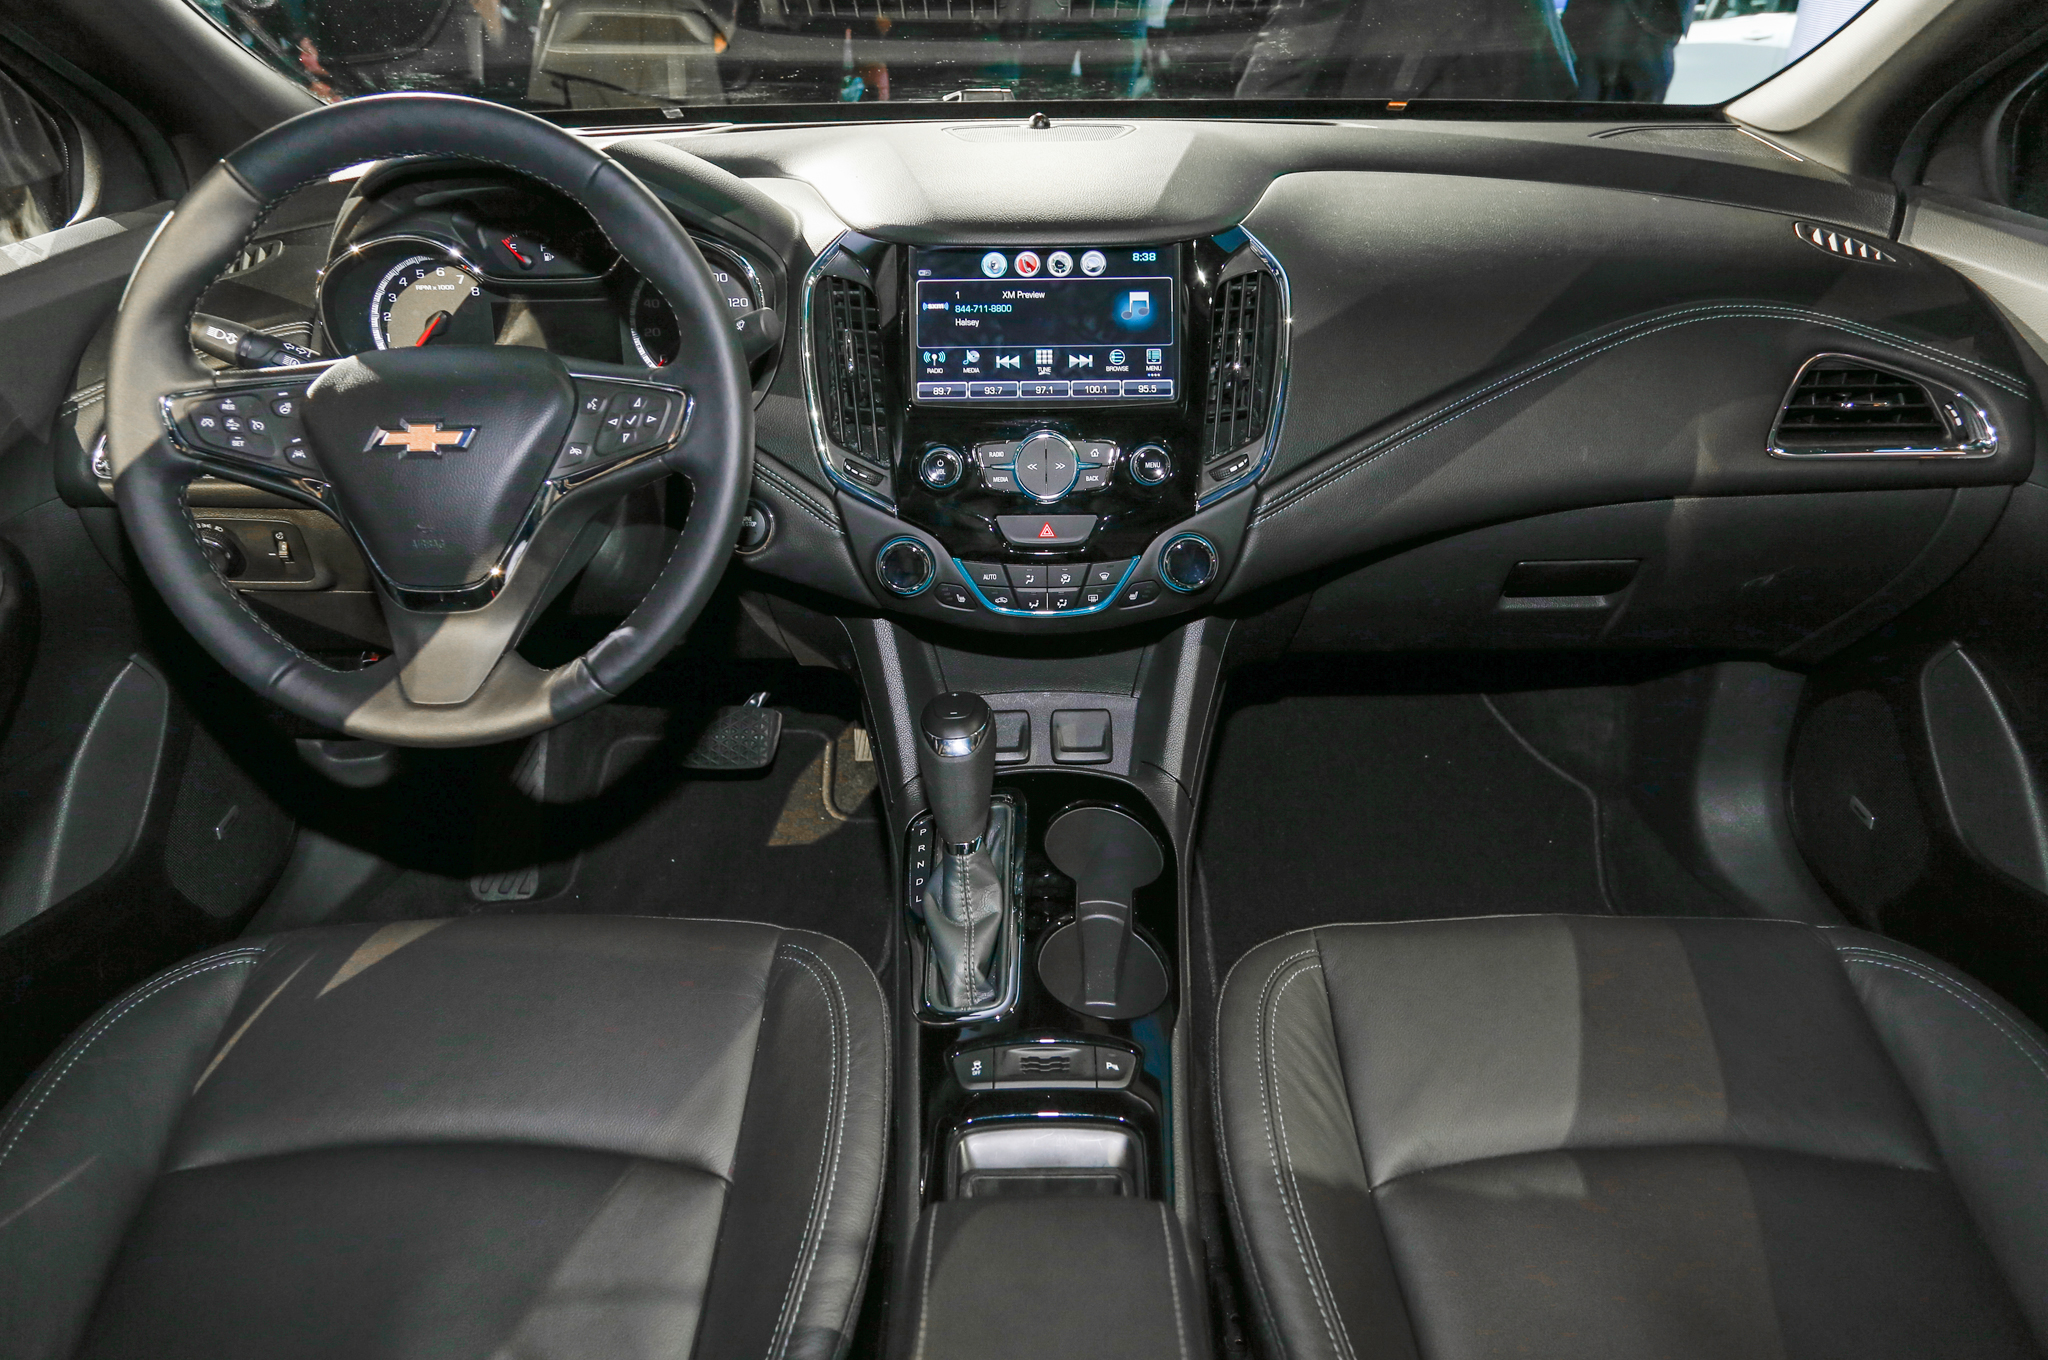 2017 Chevy Cruze Lt Interior